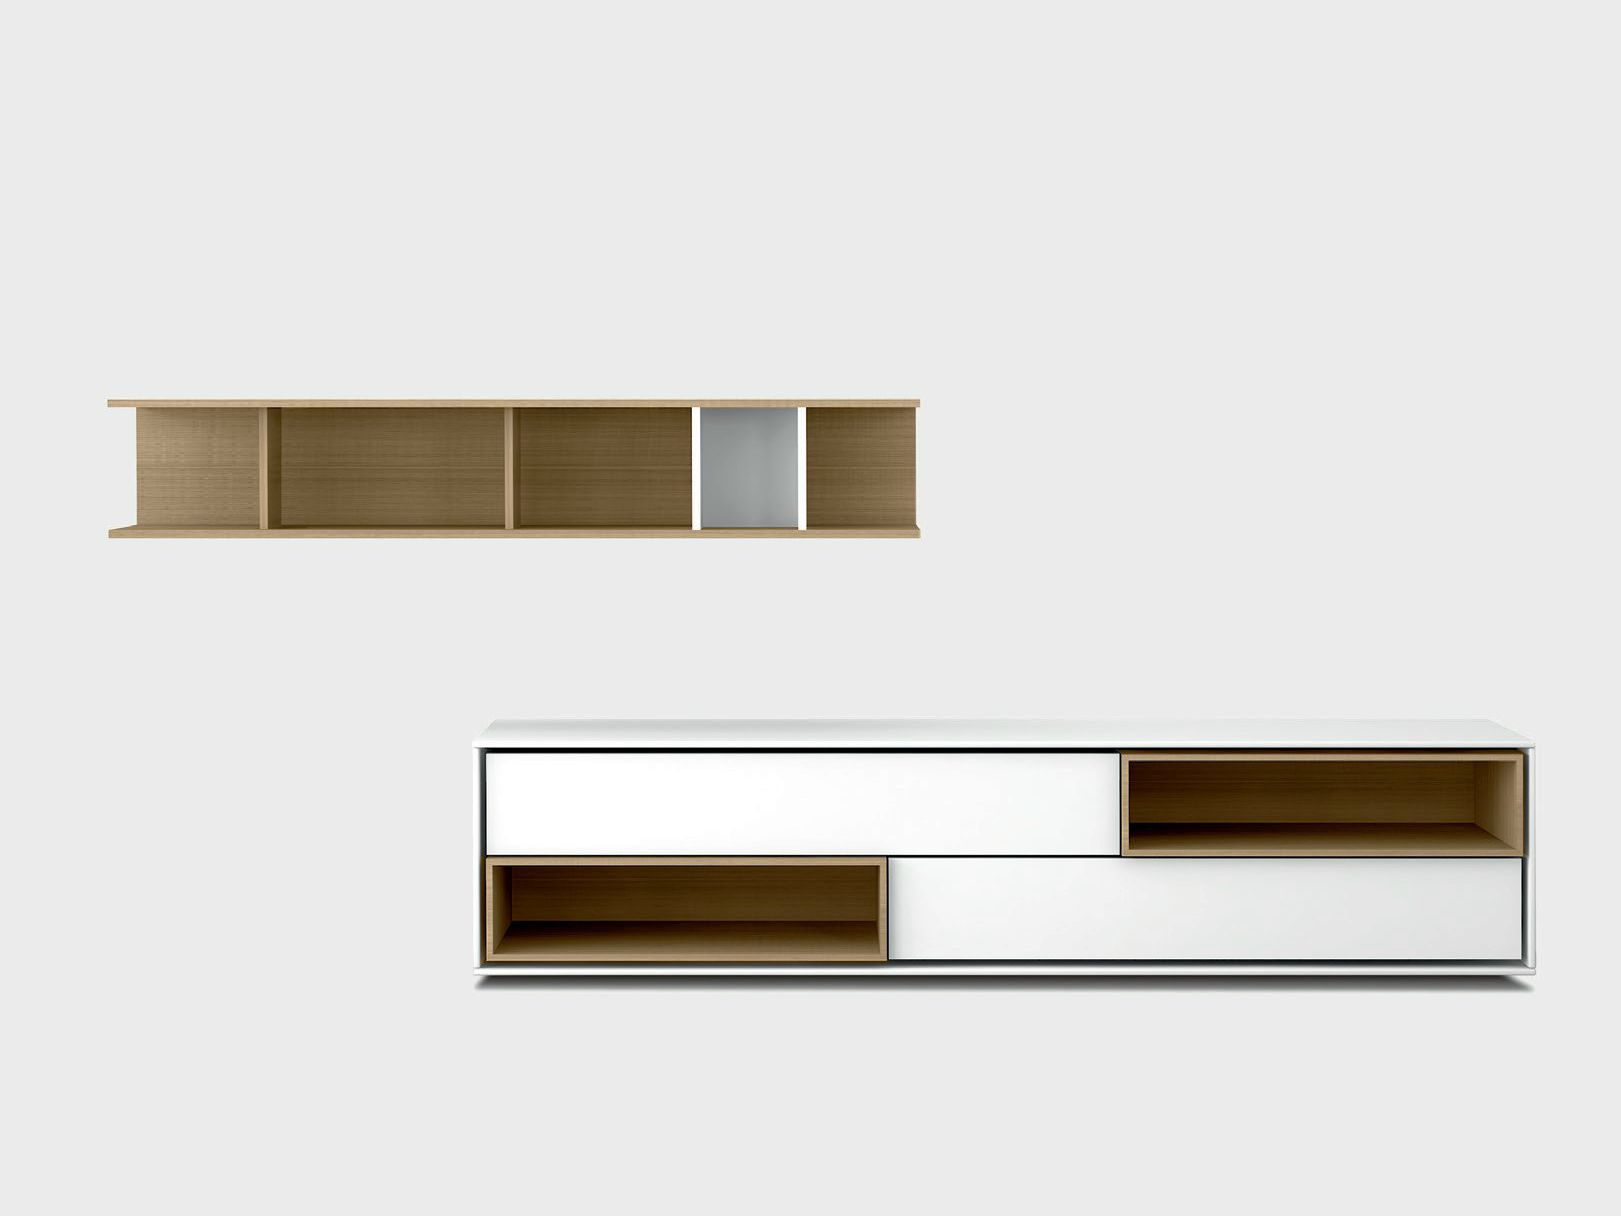 Lacquered Solid Wood Storage Wall AURA C4 2 By TREKU Design Angel Martí,  Enrique